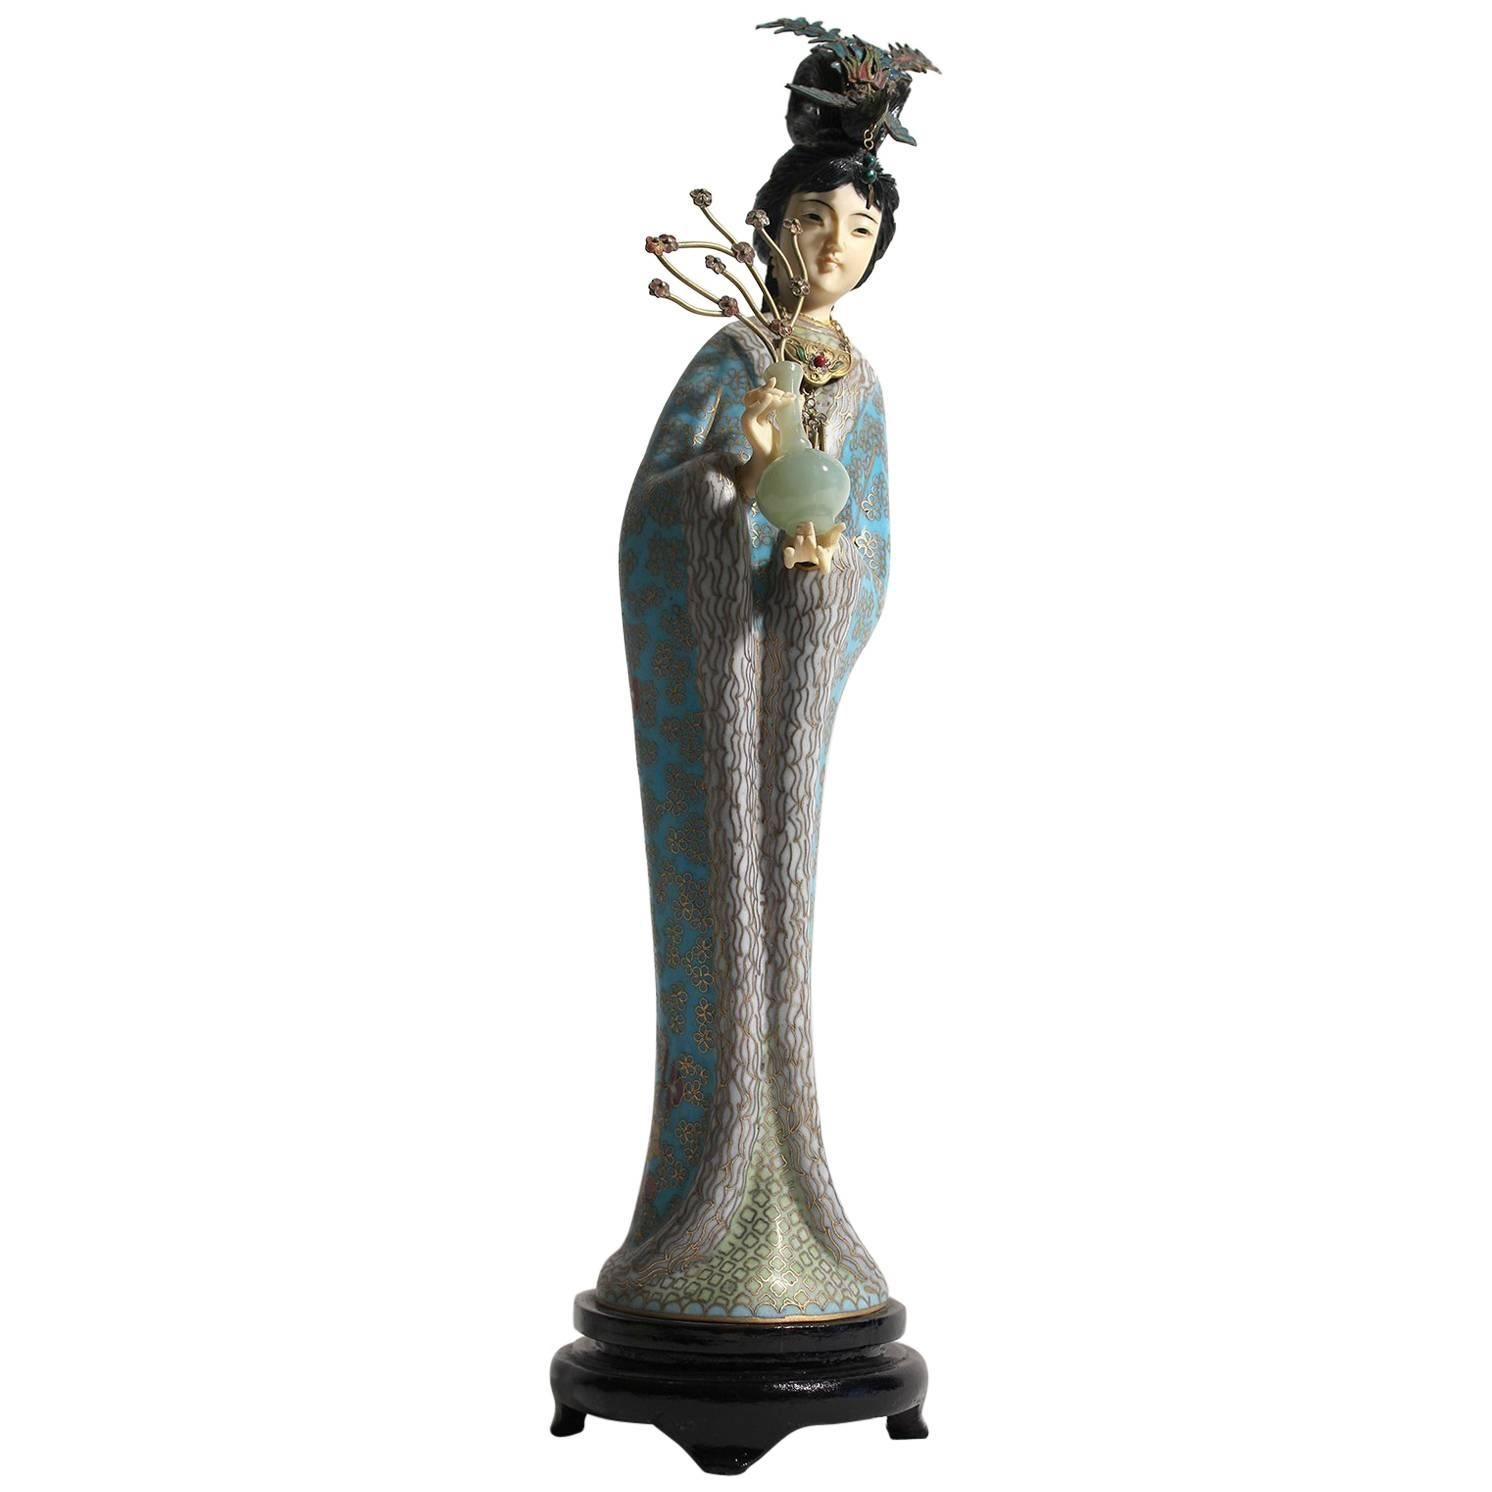 Antique Chinese Cloisonné Enameled Carved Guanyin Quan Yin Sculpture Figurine